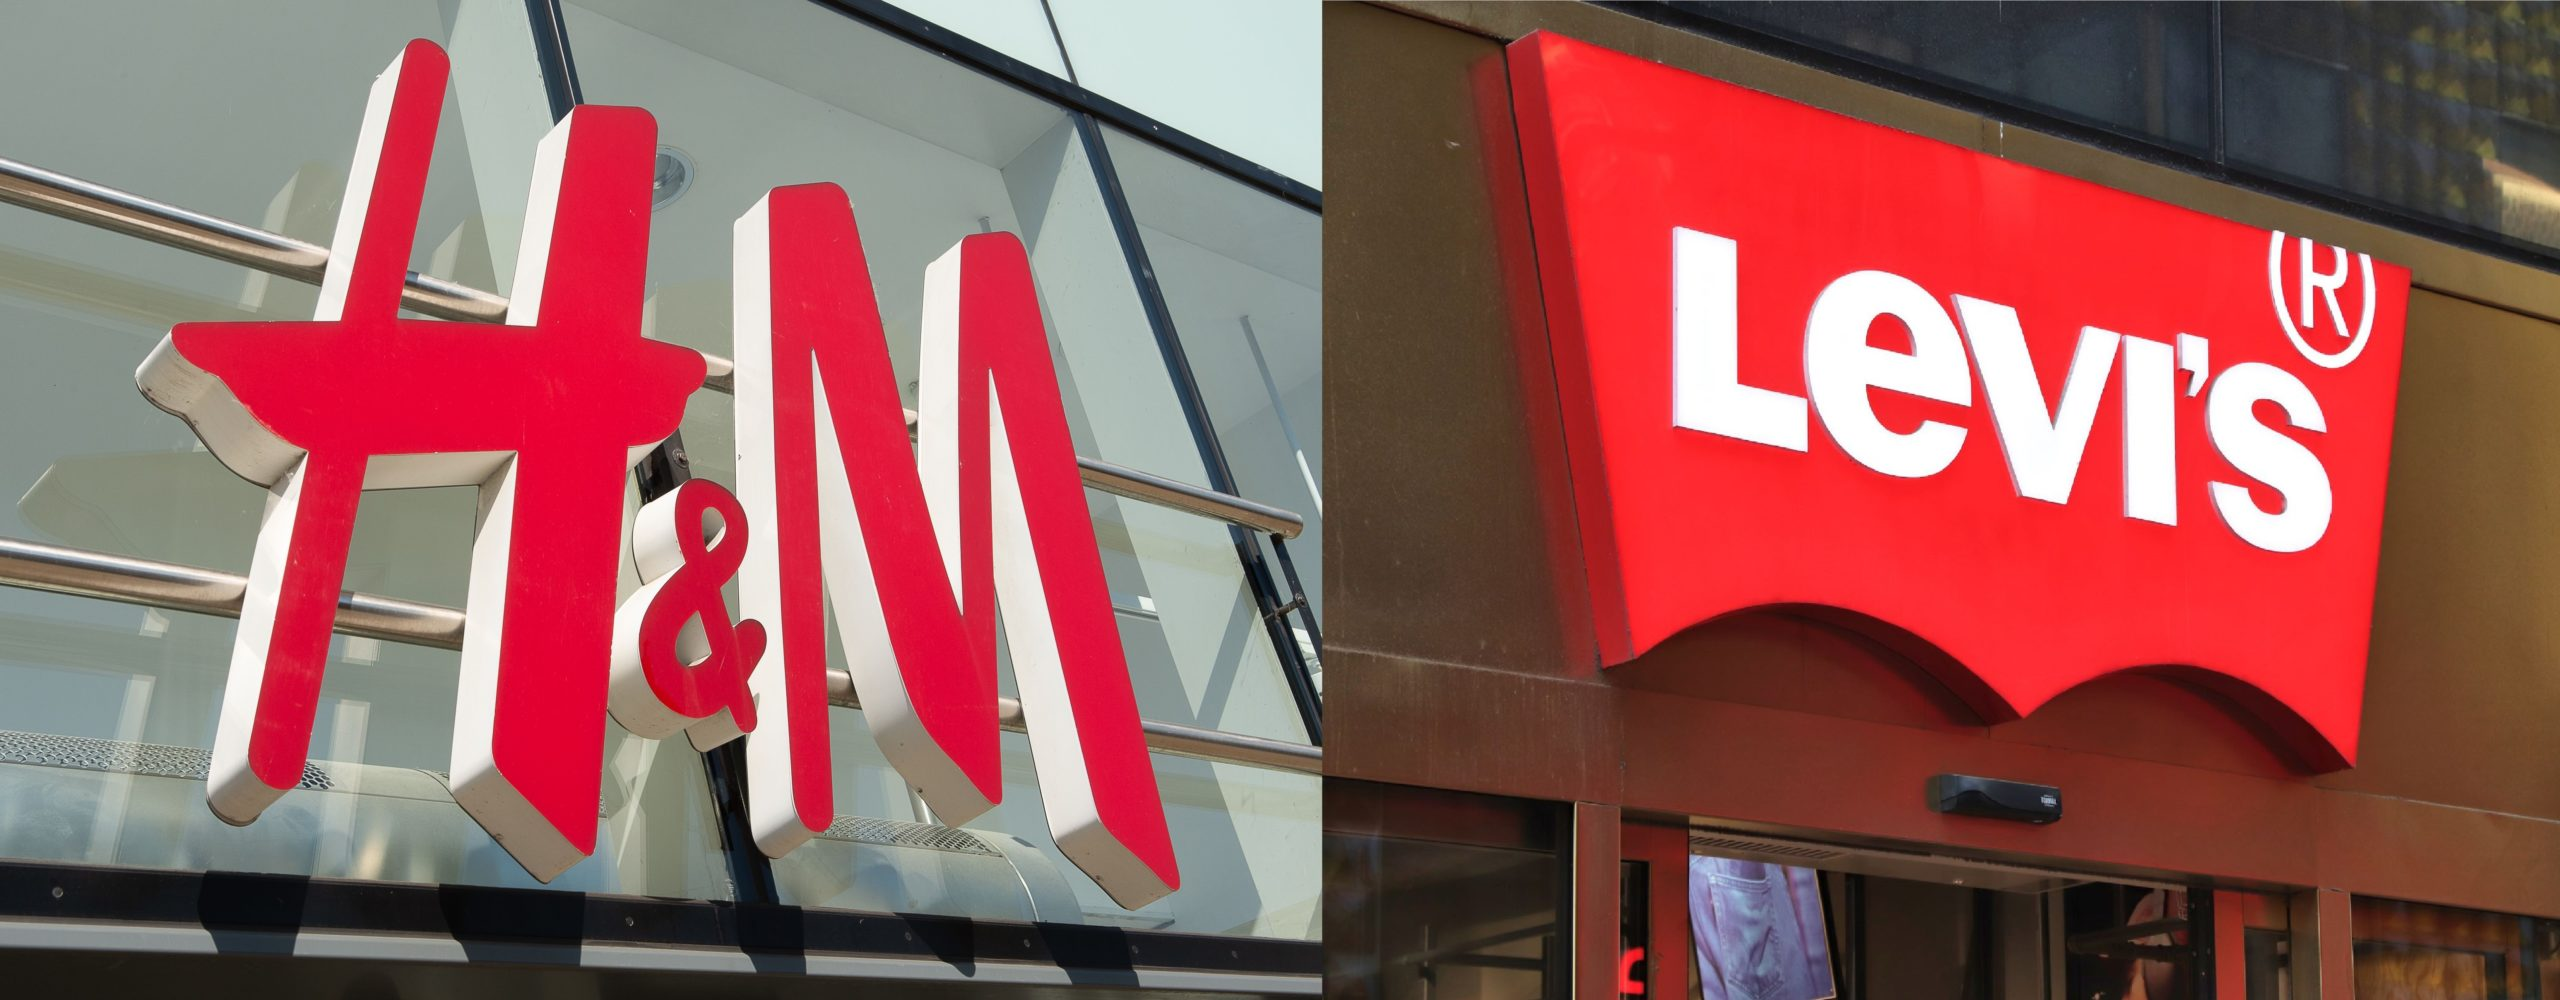 Both Levi's and Hennes and Mauritz are under renewed scrutiny regarding their timeliness in paying Bangladesh garment suppliers, WRC says.